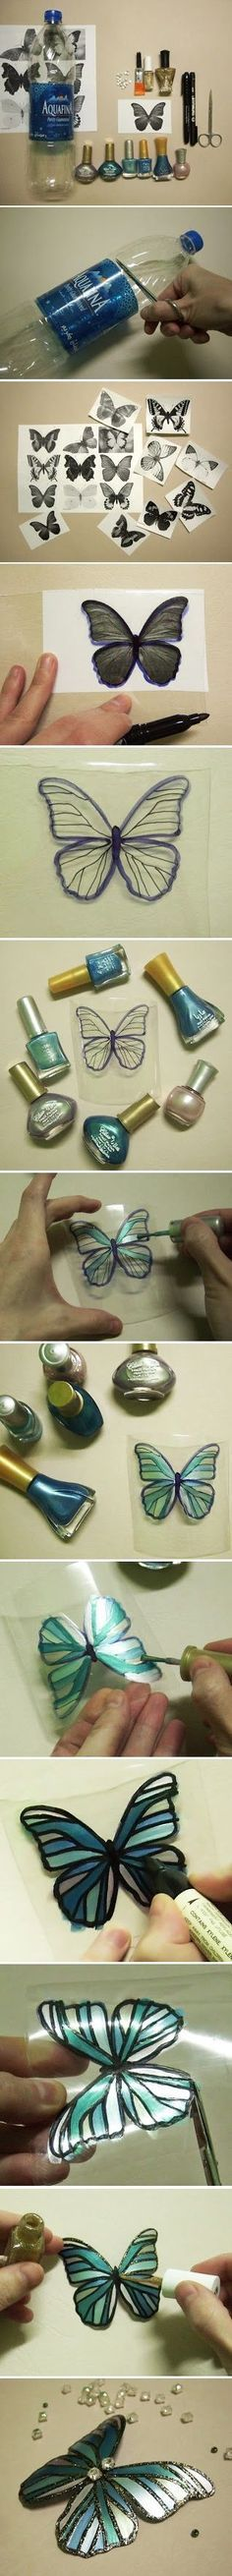 Make butterfly decorations using plastic bottles and nail polish.